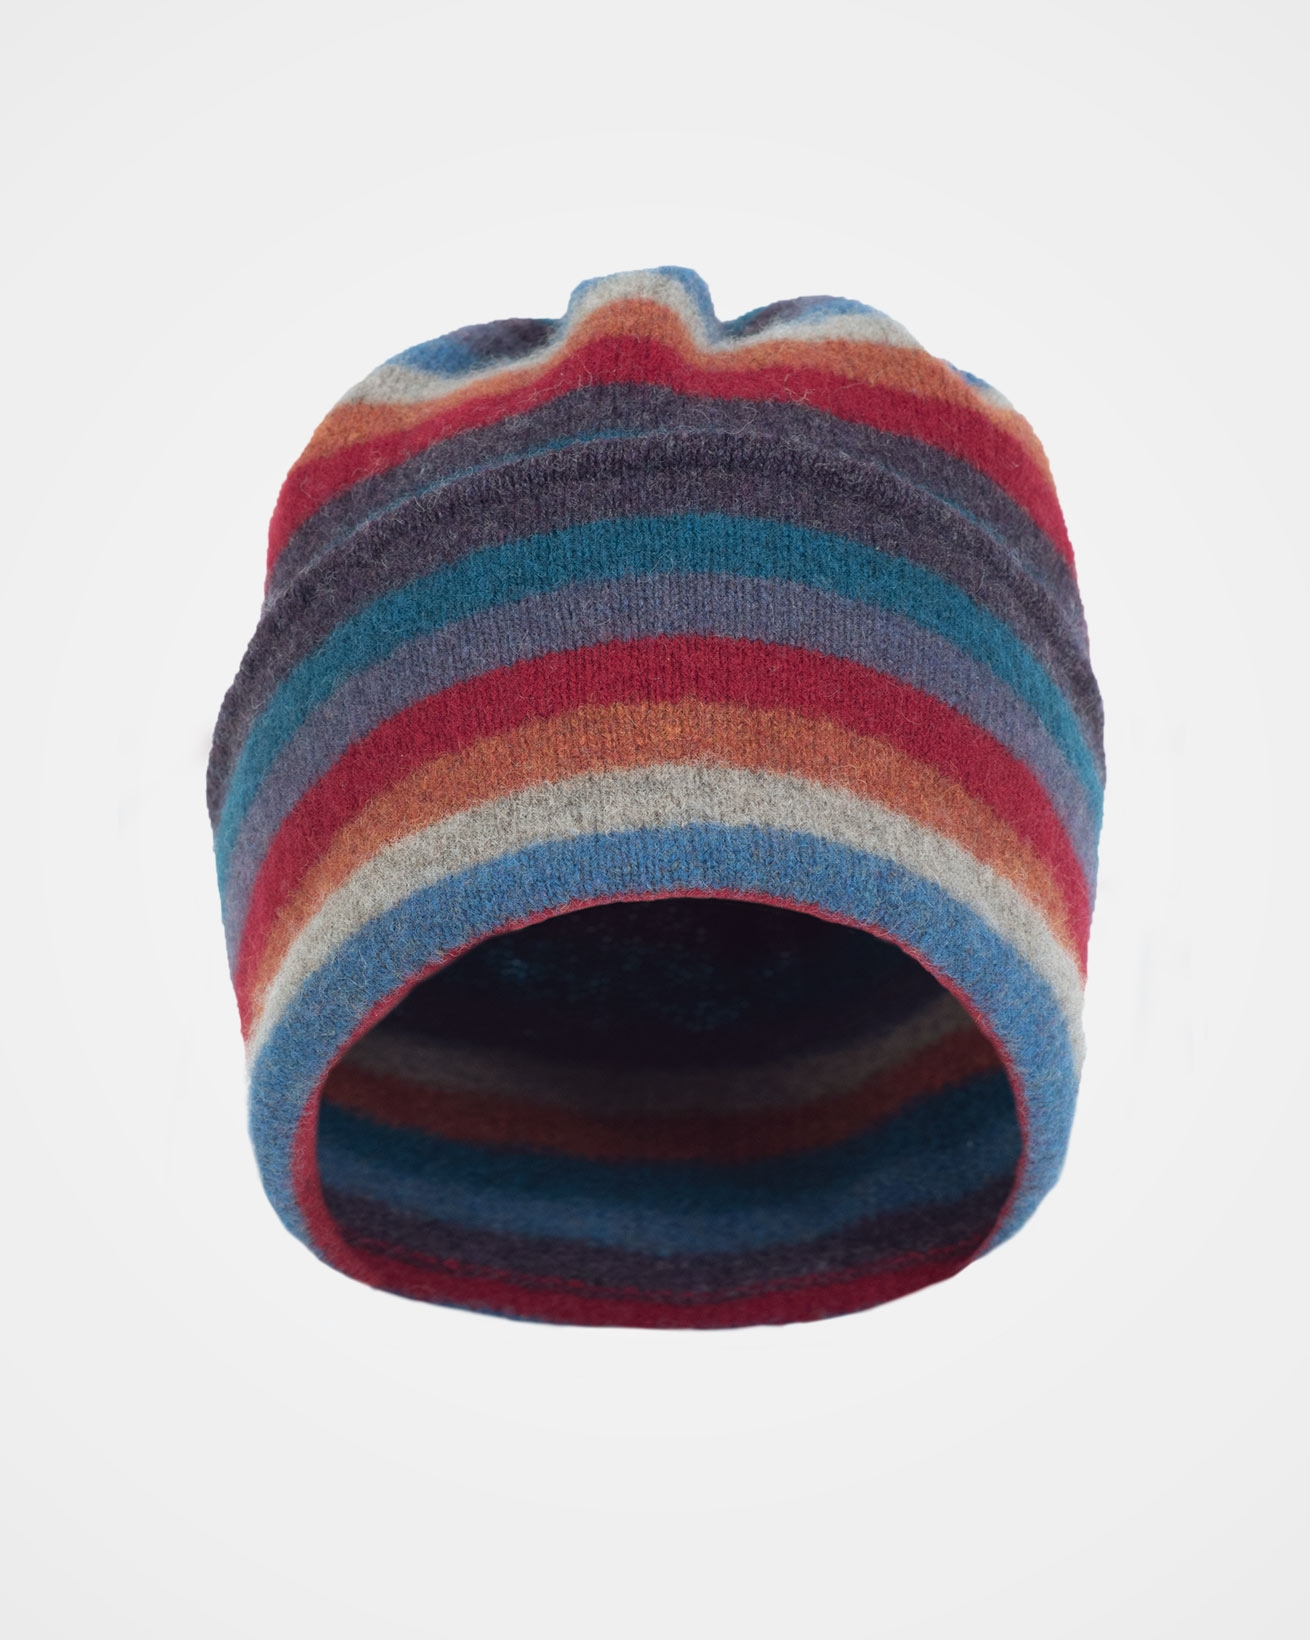 7651_red-and-blue-stripe-hat_icelandic-stripe_front.jpg